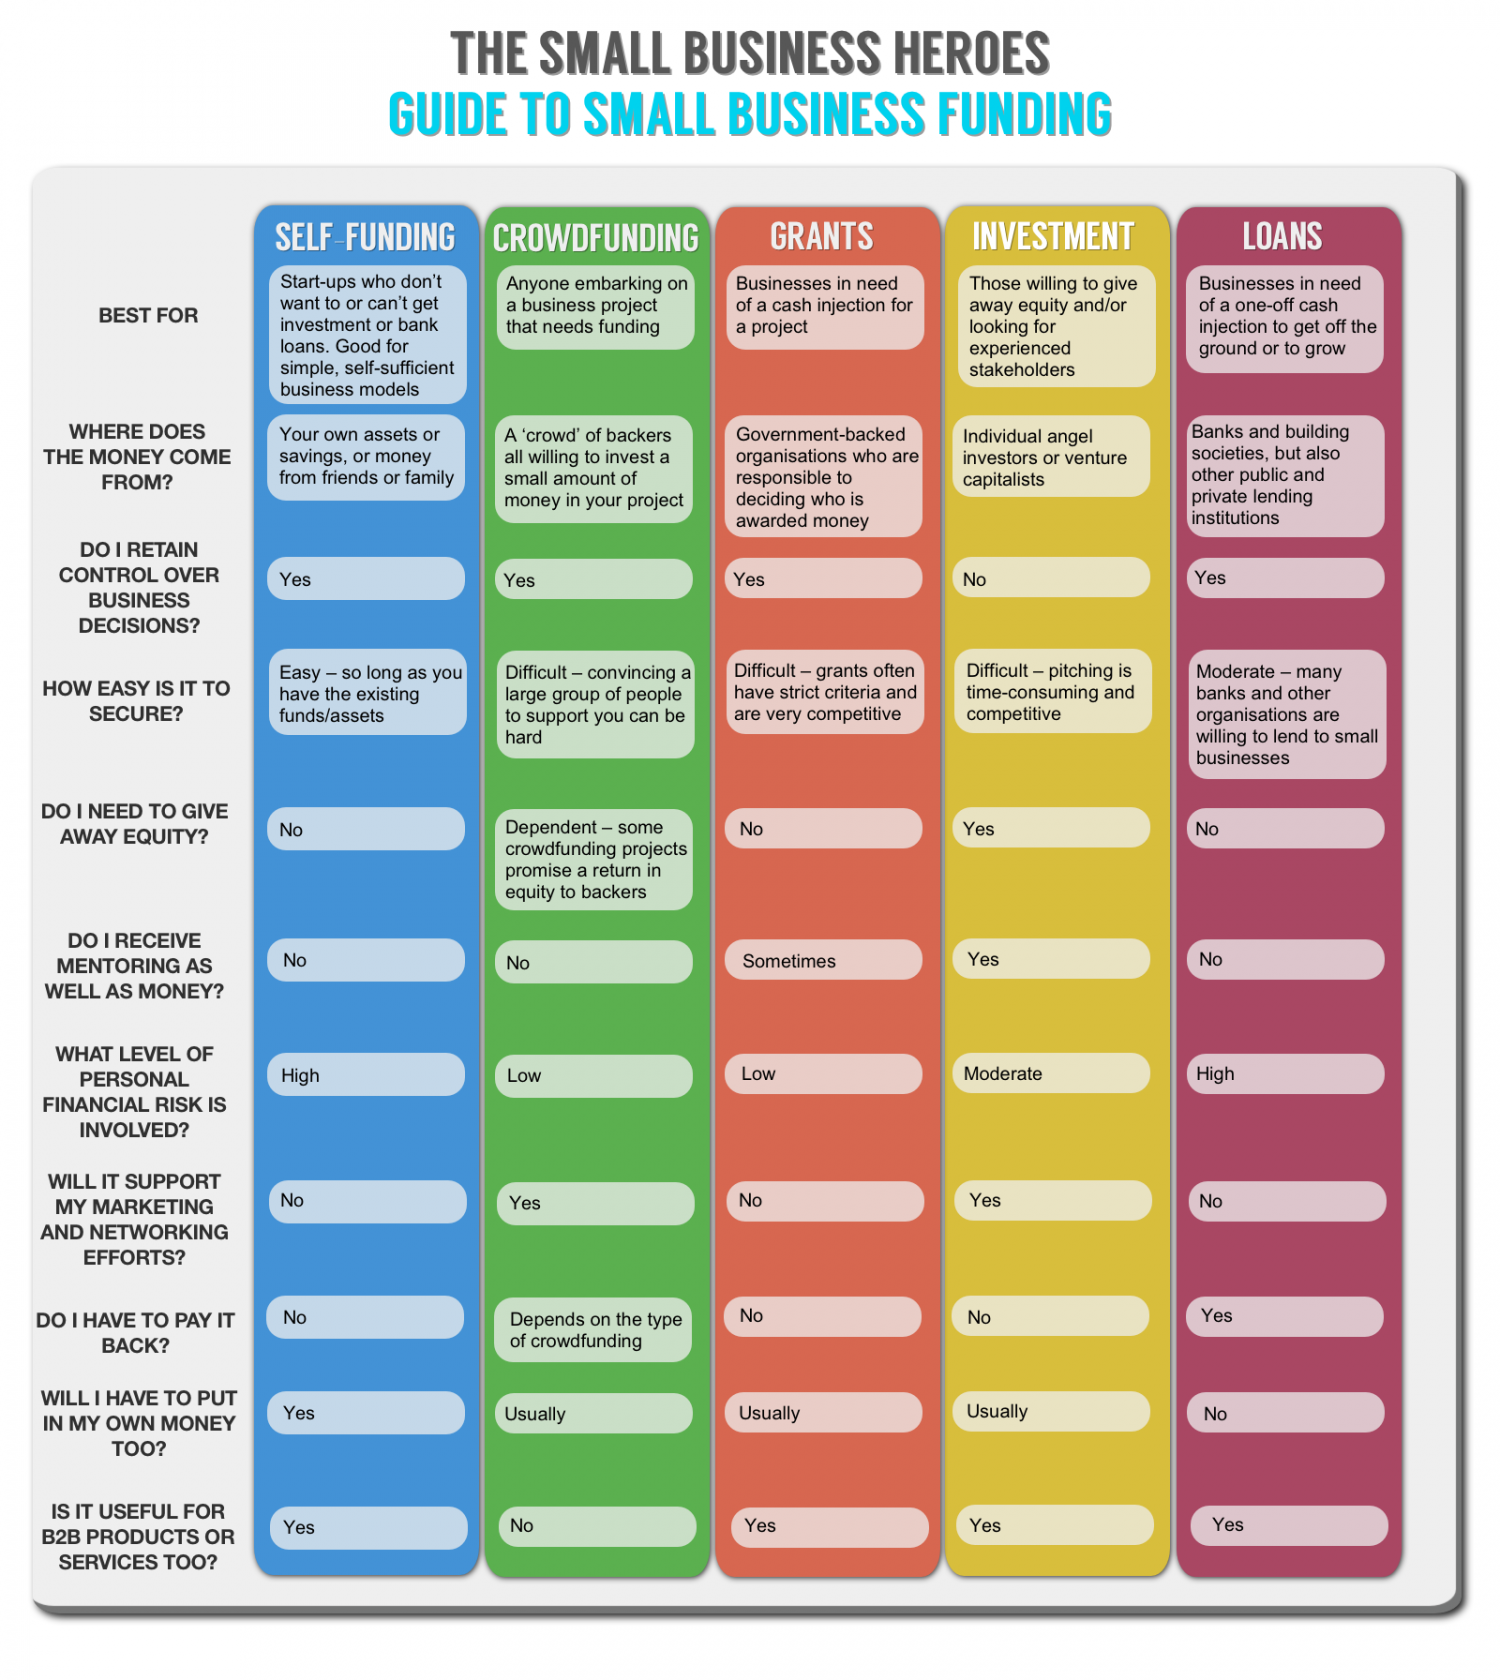 The Small Business Heroes Guide To Small Business Funding Infographic